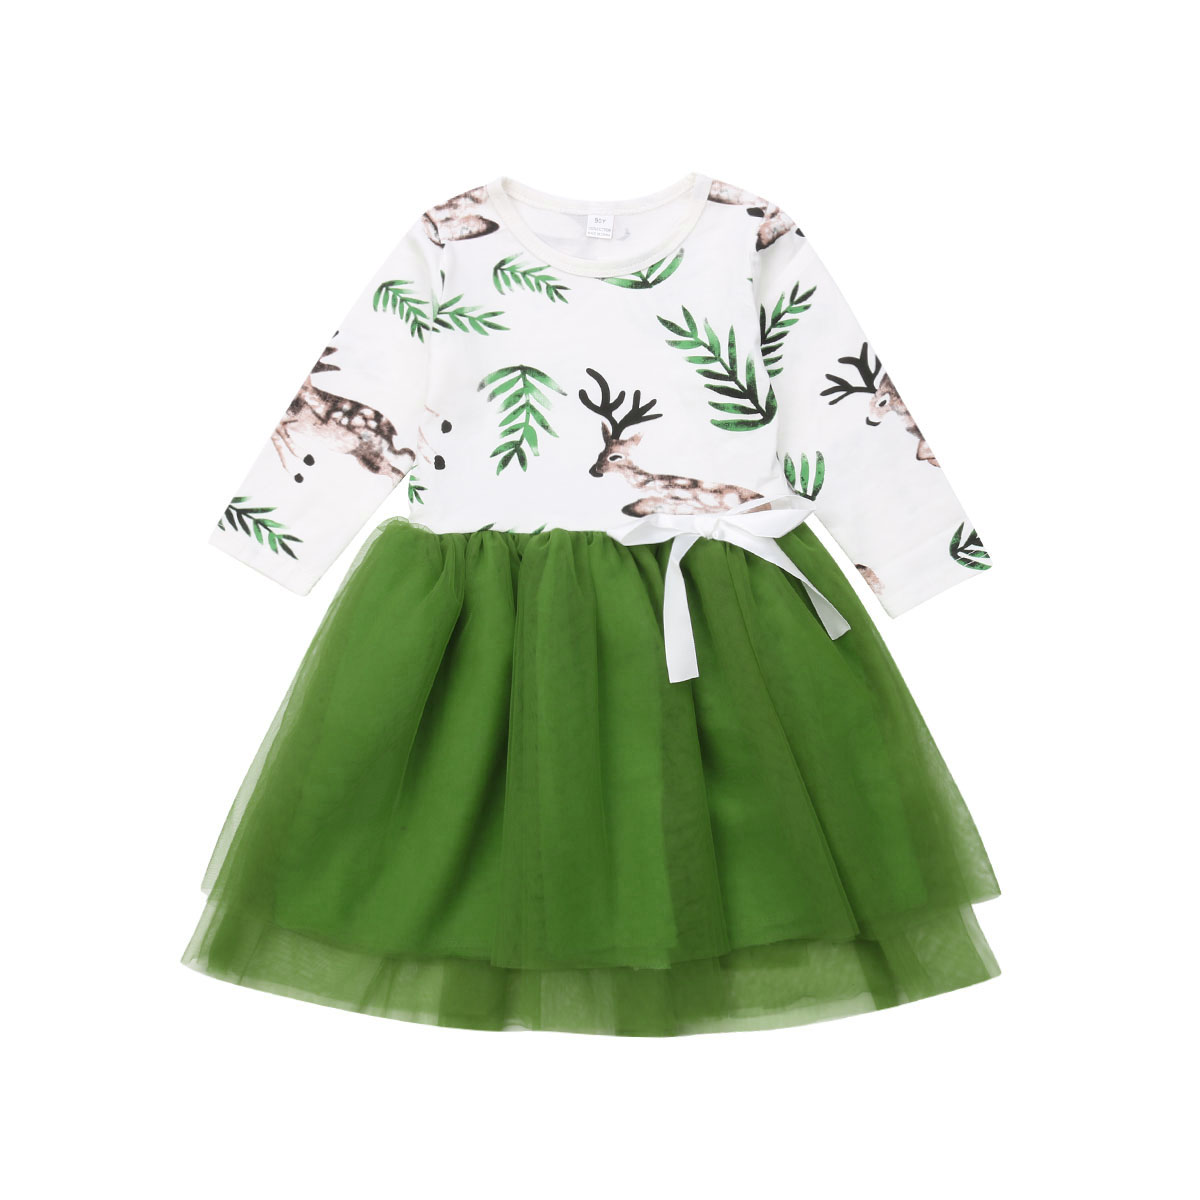 2-7Y Christmas Kids Baby Girls Dress Xmas Deer Tutu Dresses Party Casual Clothes